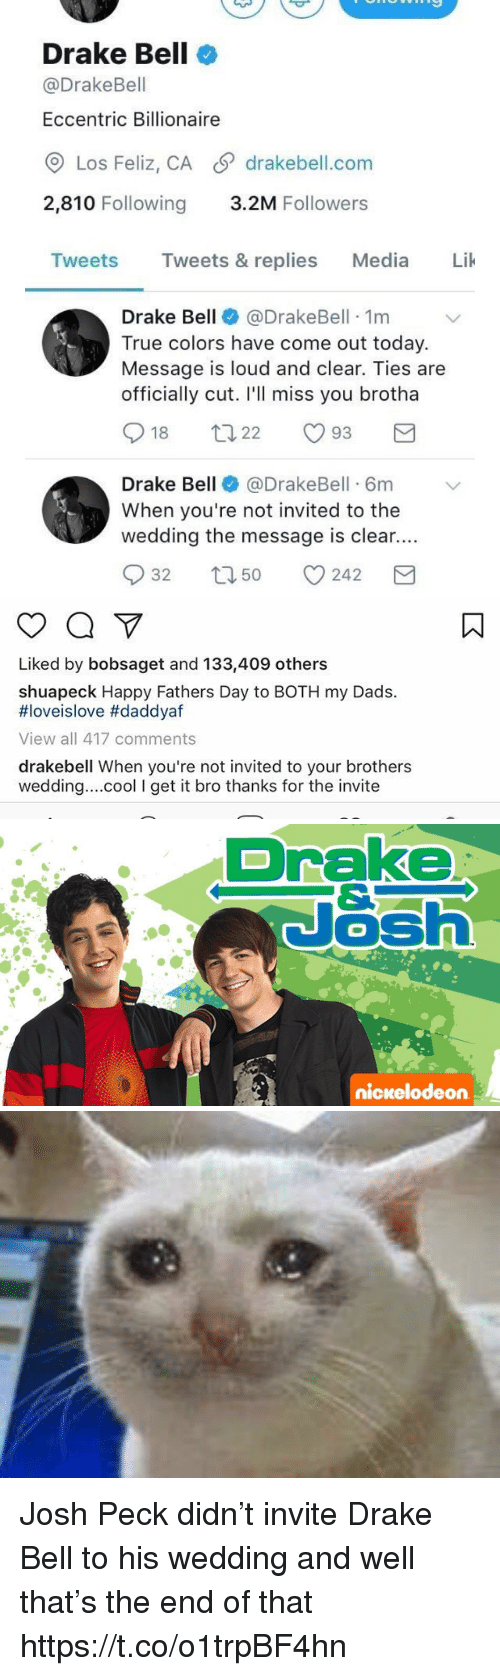 Josh Peck: Drake Bell  @Drake Bell  Eccentric Billionaire  CO Los Feliz, CA SP drakebell.com  2,810 Following  3.2M Followers  Tweets  Tweets & replies  Media  Lik  Drake Bell  @Drake Bell 1m  True colors have come out today.  Message is loud and clear. Ties are  officially cut. I'll miss you brotha  S t 22  18  93  Drake Bell  @DrakeBell 6m v  When you're not invited to the  wedding the message is clear....  S 32 t 50 242  M   Liked by bobsaget and 133,409 others  shuapeck Happy Fathers Day to BOTH my Dads.  HIoveislove #daddyaf  View all 417 comments  drakebell When you're not invited to your brothers  wedding....cool I get it bro thanks for the invite   Drake  Nash  nickelodeon Josh Peck didn't invite Drake Bell to his wedding and well that's the end of that https://t.co/o1trpBF4hn